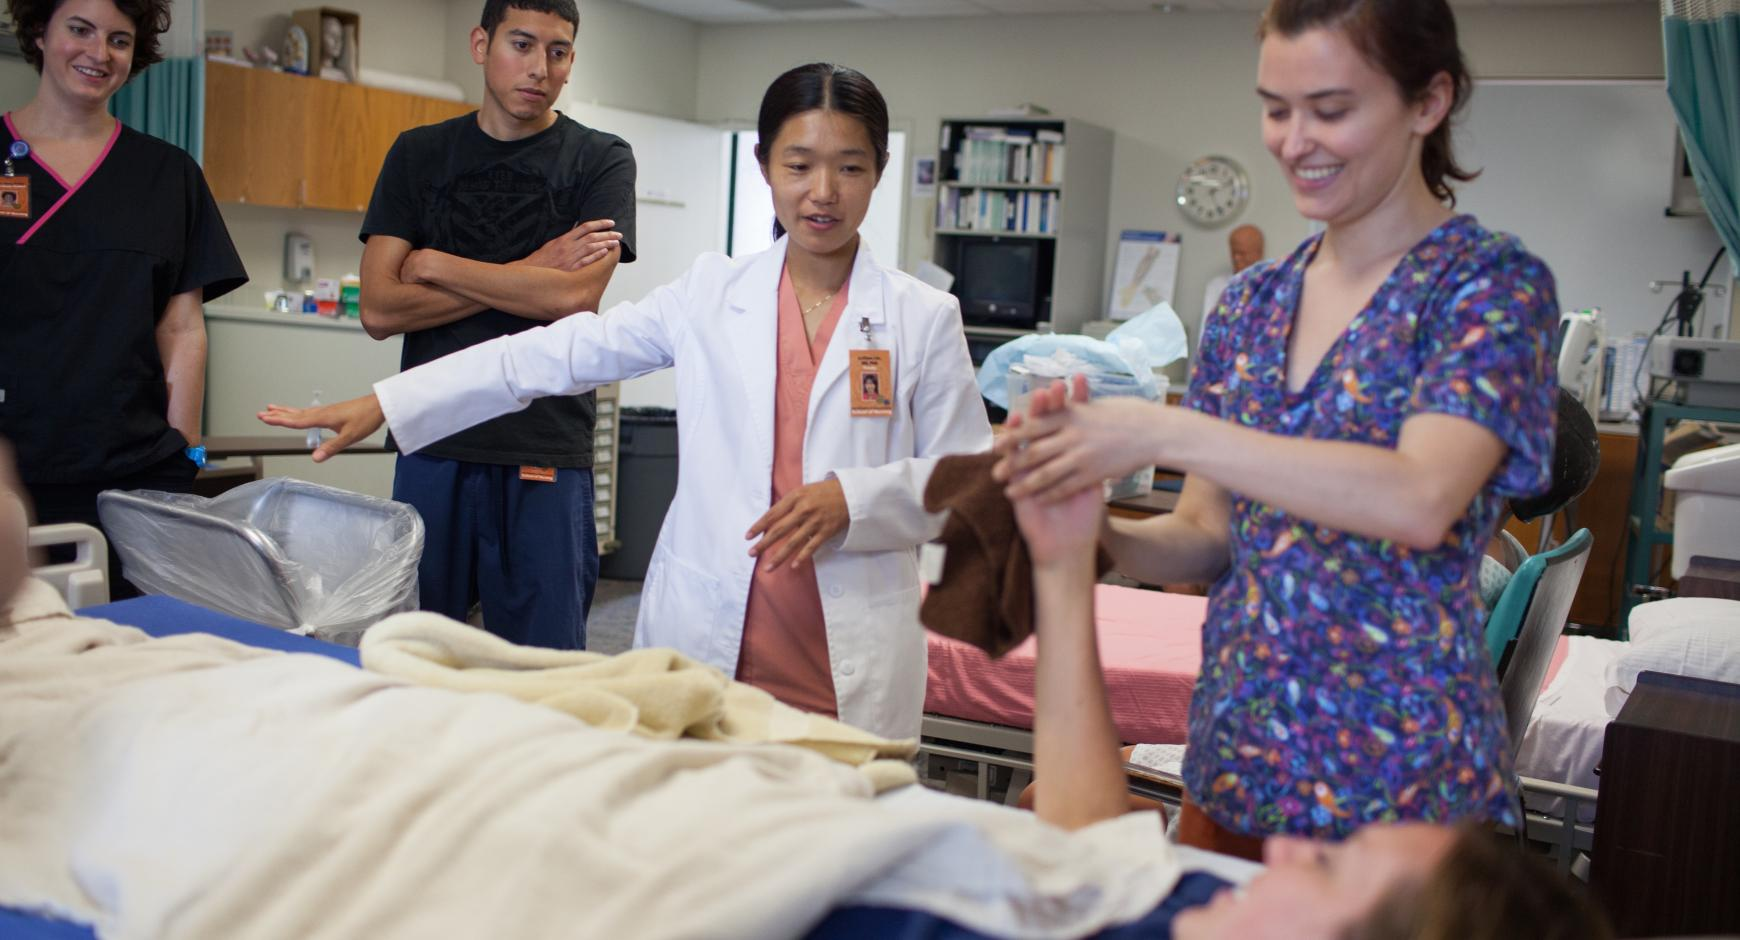 Nursing students receive instruction while helping a patient.